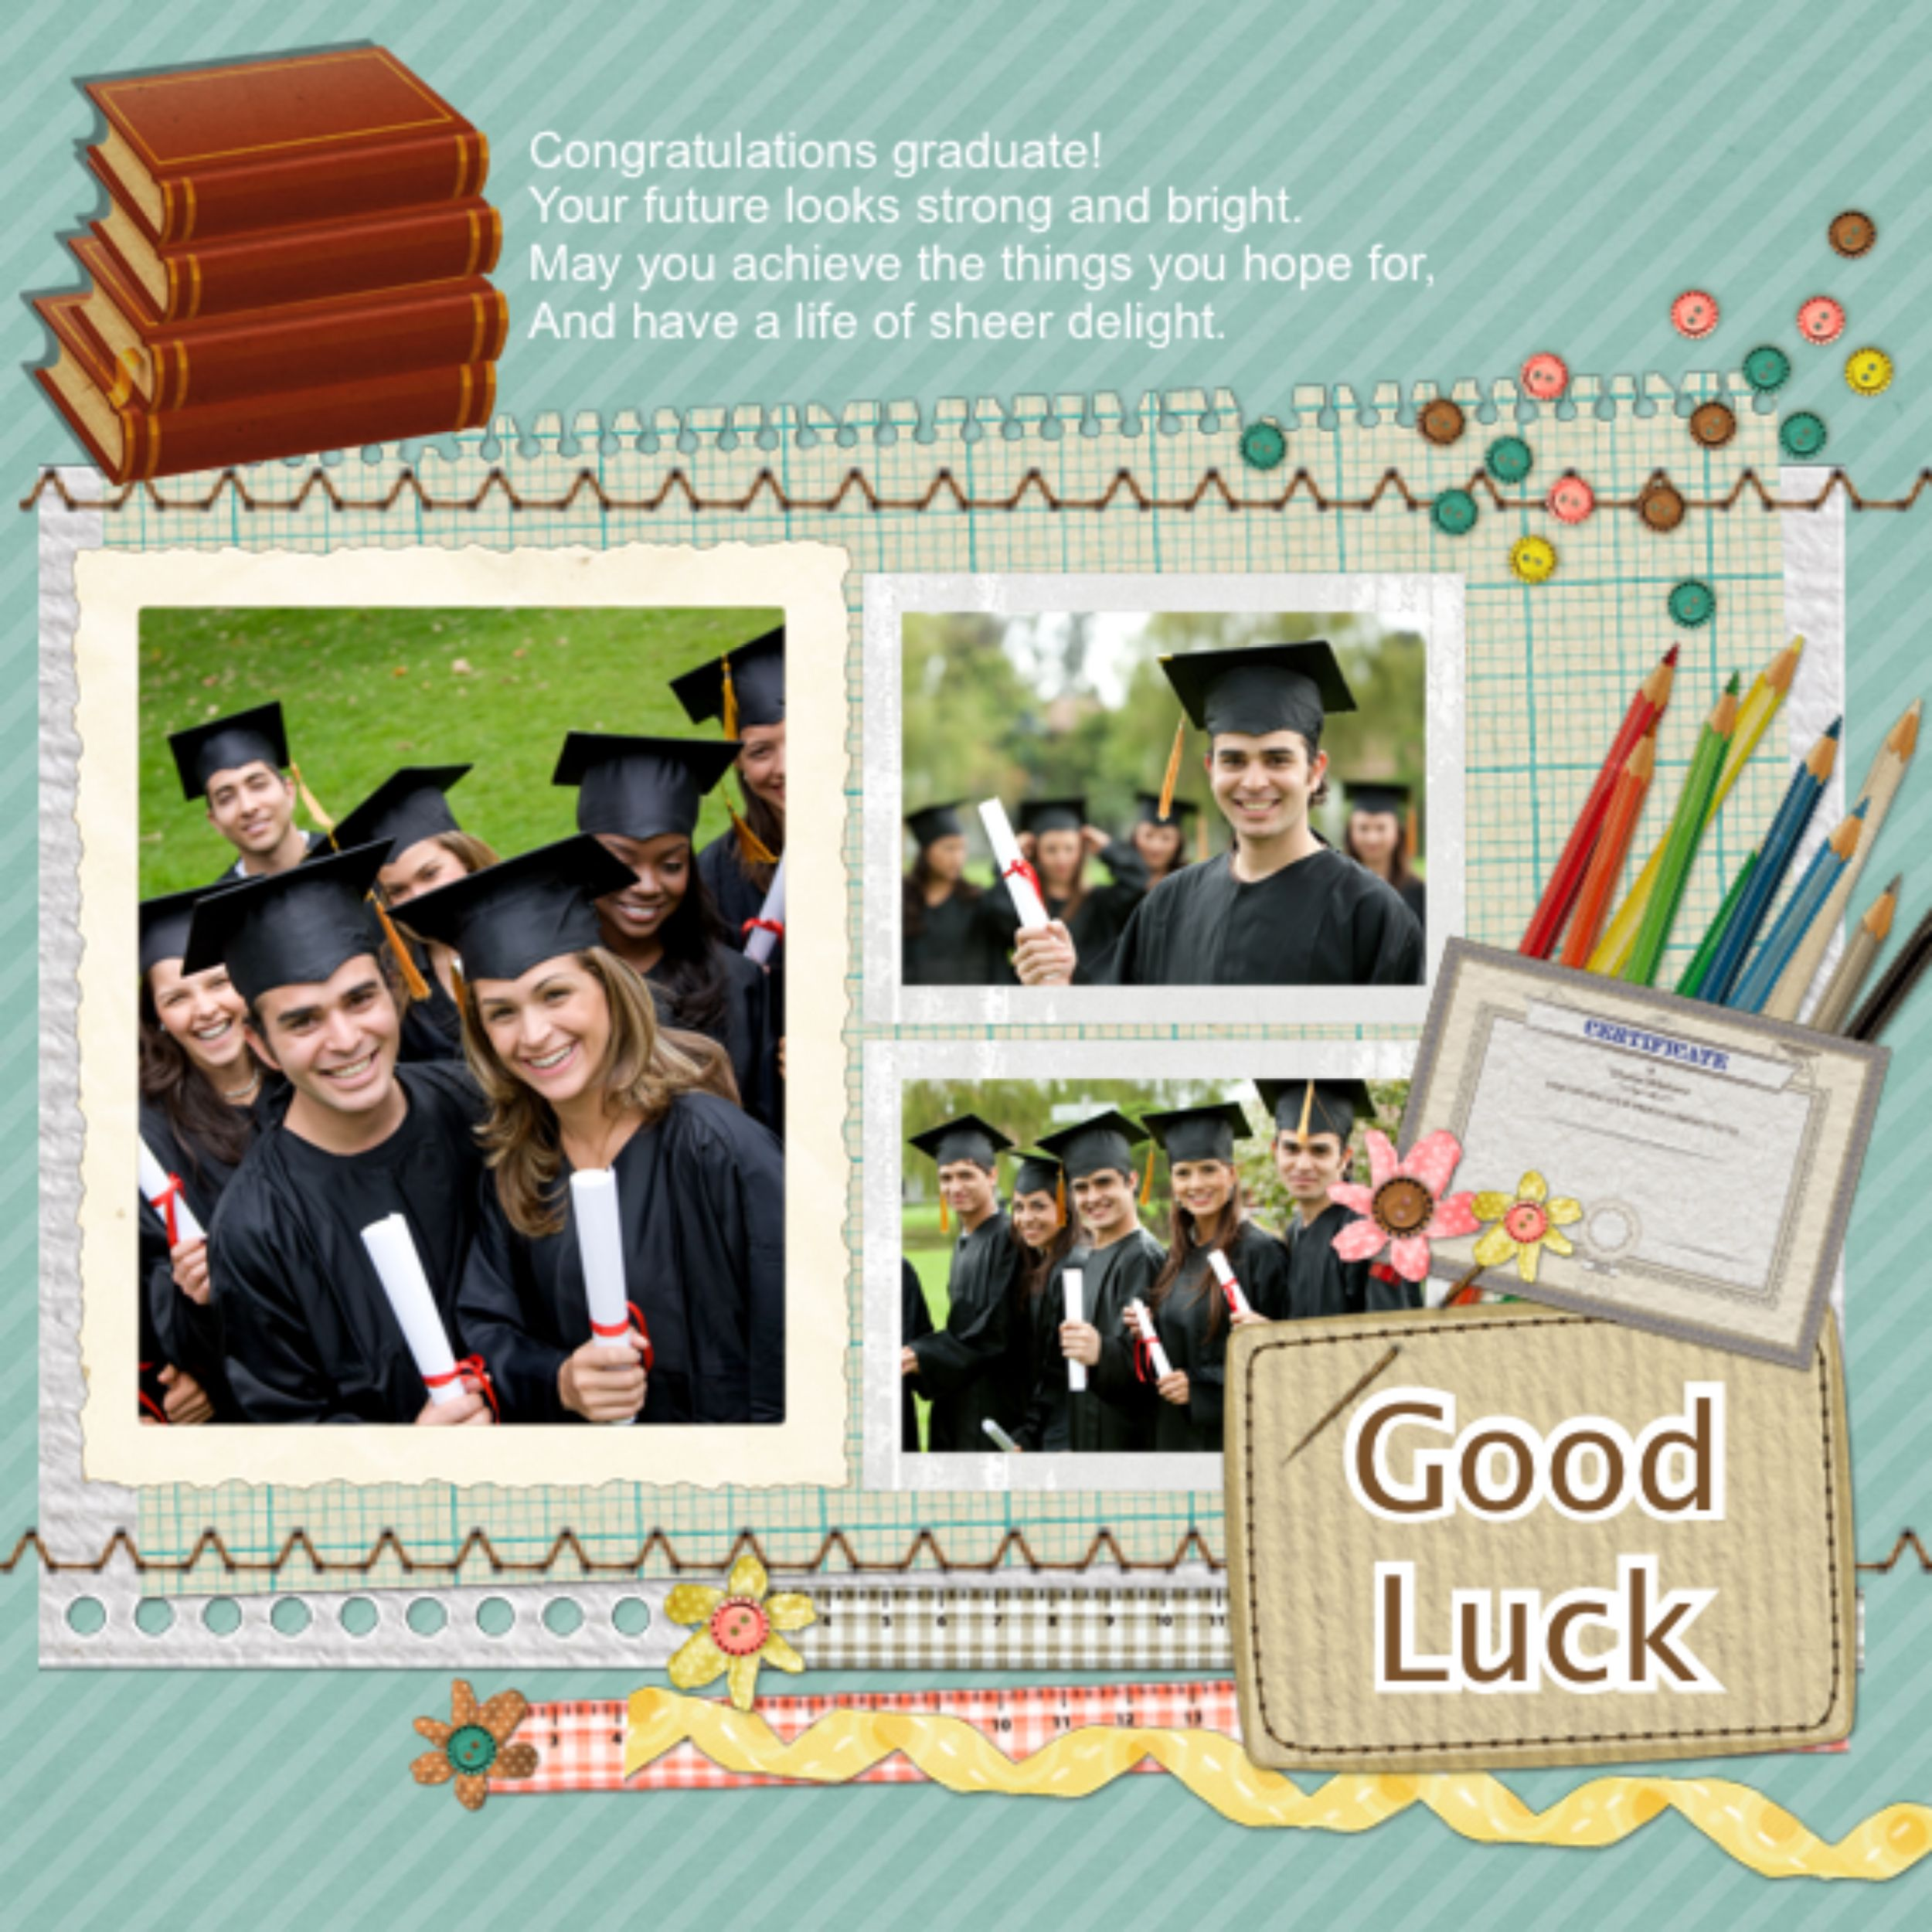 How to scrapbook on a mac - Use This Shinning Scrapbook To May Your Friends Achieve The Things They Hope For